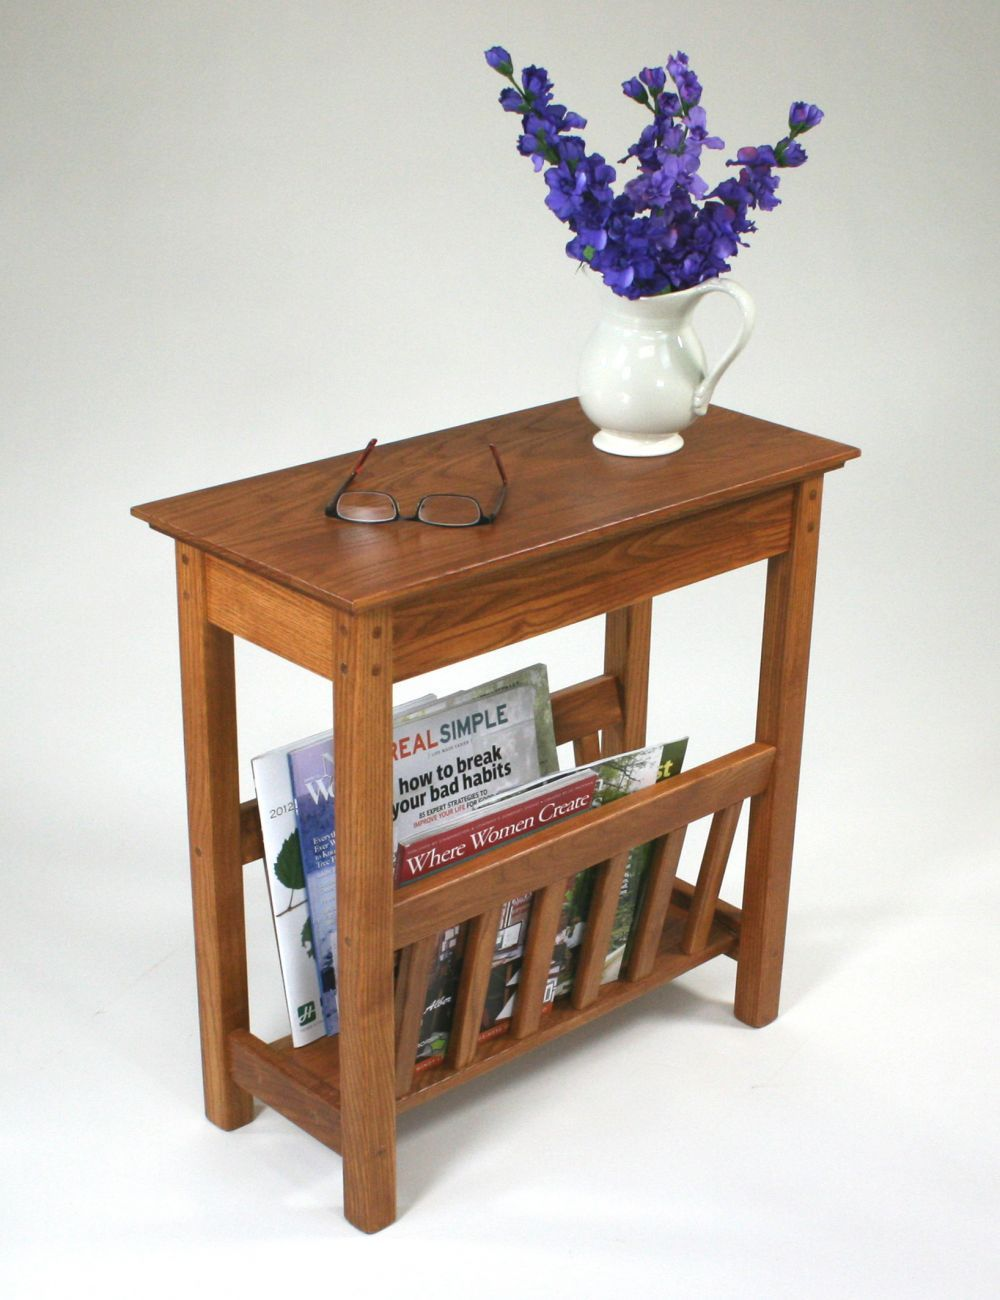 Small Side Table With Magazine Rack The Simple But Very Stylish Wooden Table Shelf Combo Wooden Magazine Rack Magazine Table At Home Furniture Store